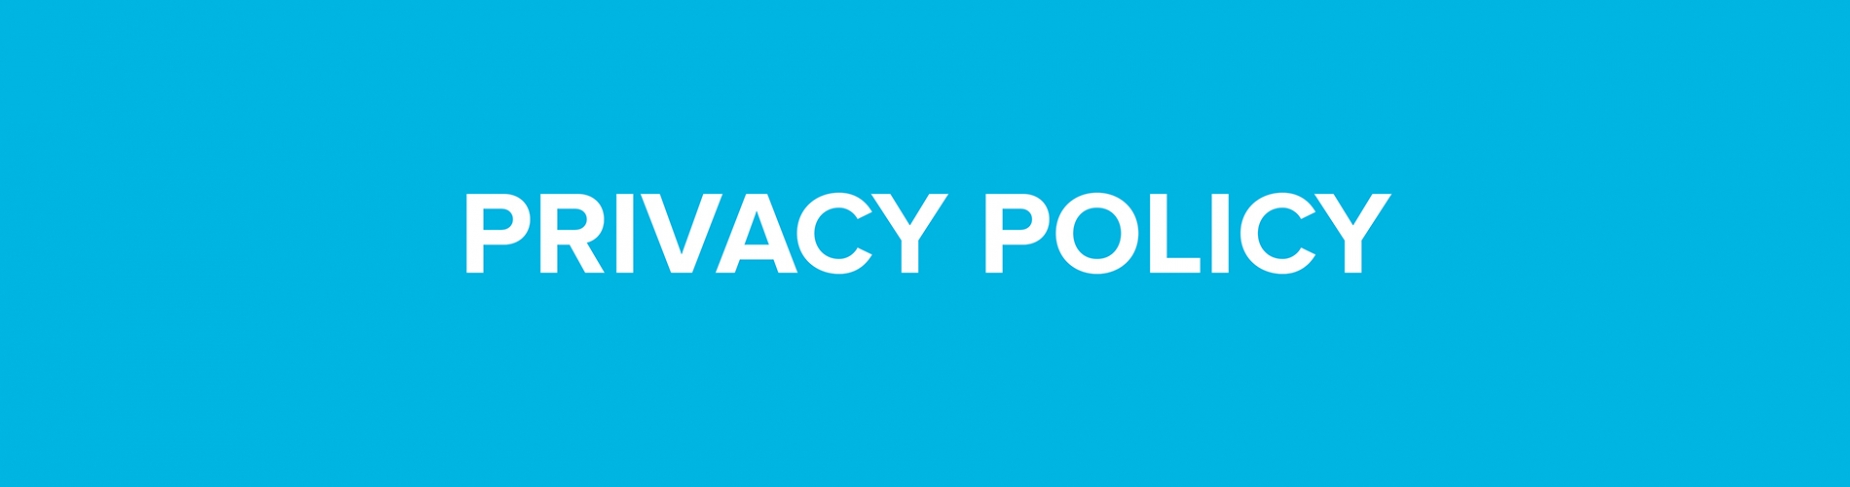 Privacy Policy And Legal Statement